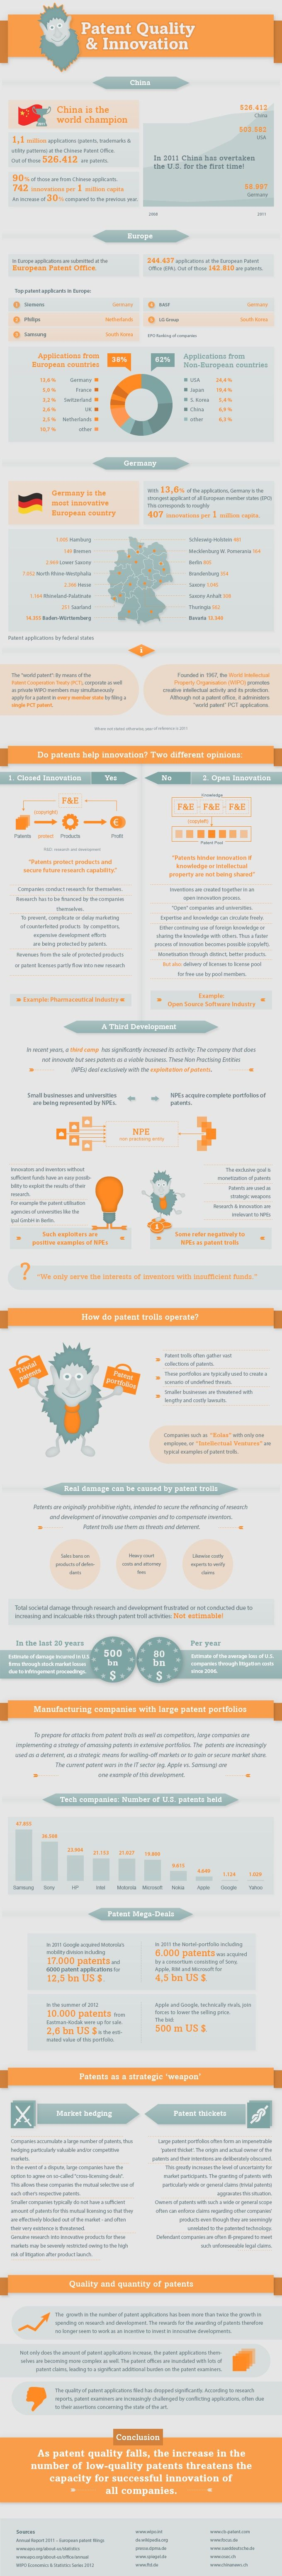 Patent quantity and quality